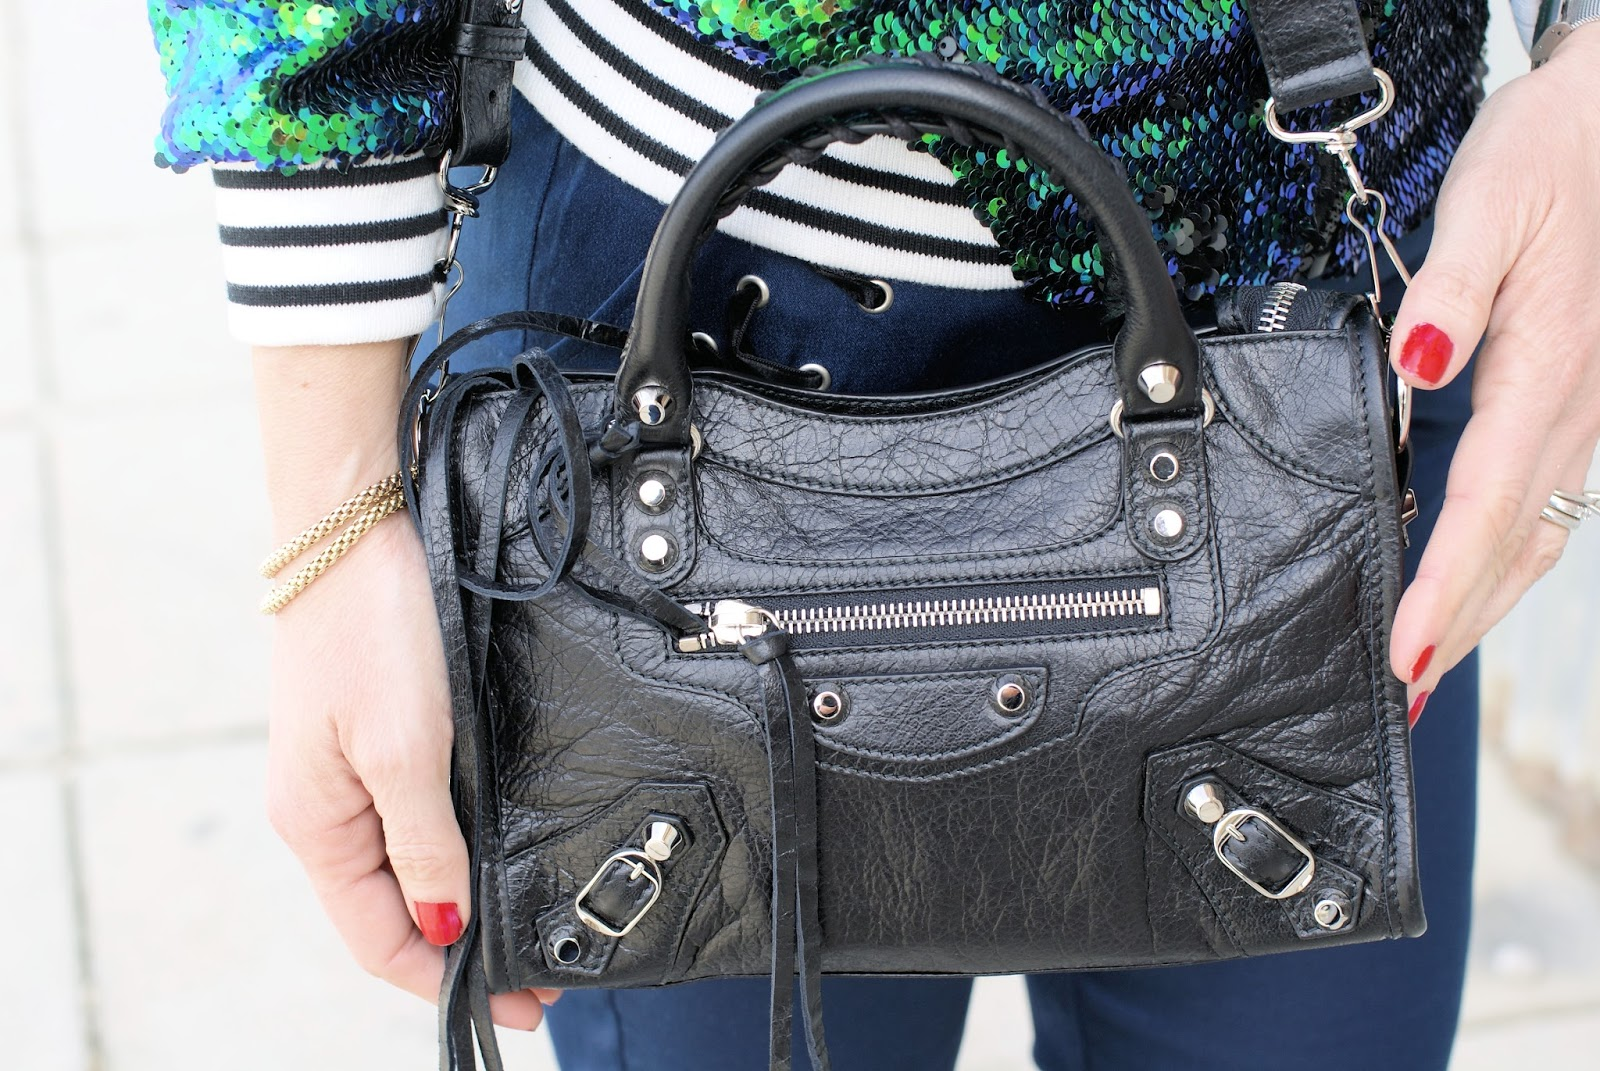 Balenciaga City Mini bag on Fashion and Cookies fashion blog, fashion blogger style